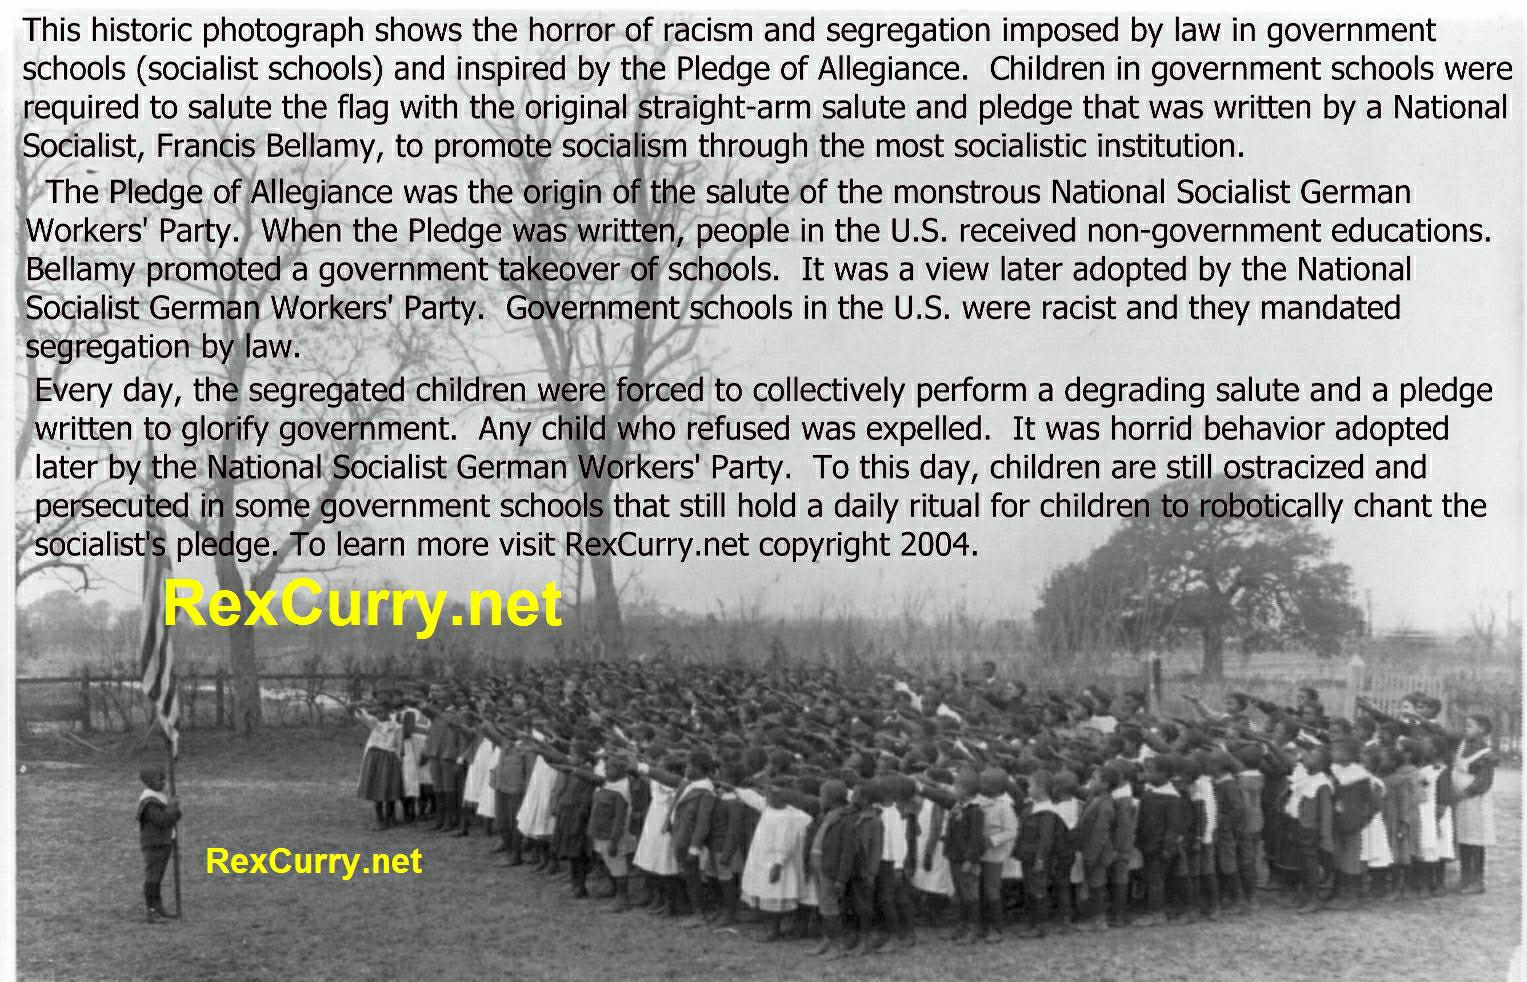 Francis Bellamy, Pledge of Allegiance, socialism, segregation, & racism